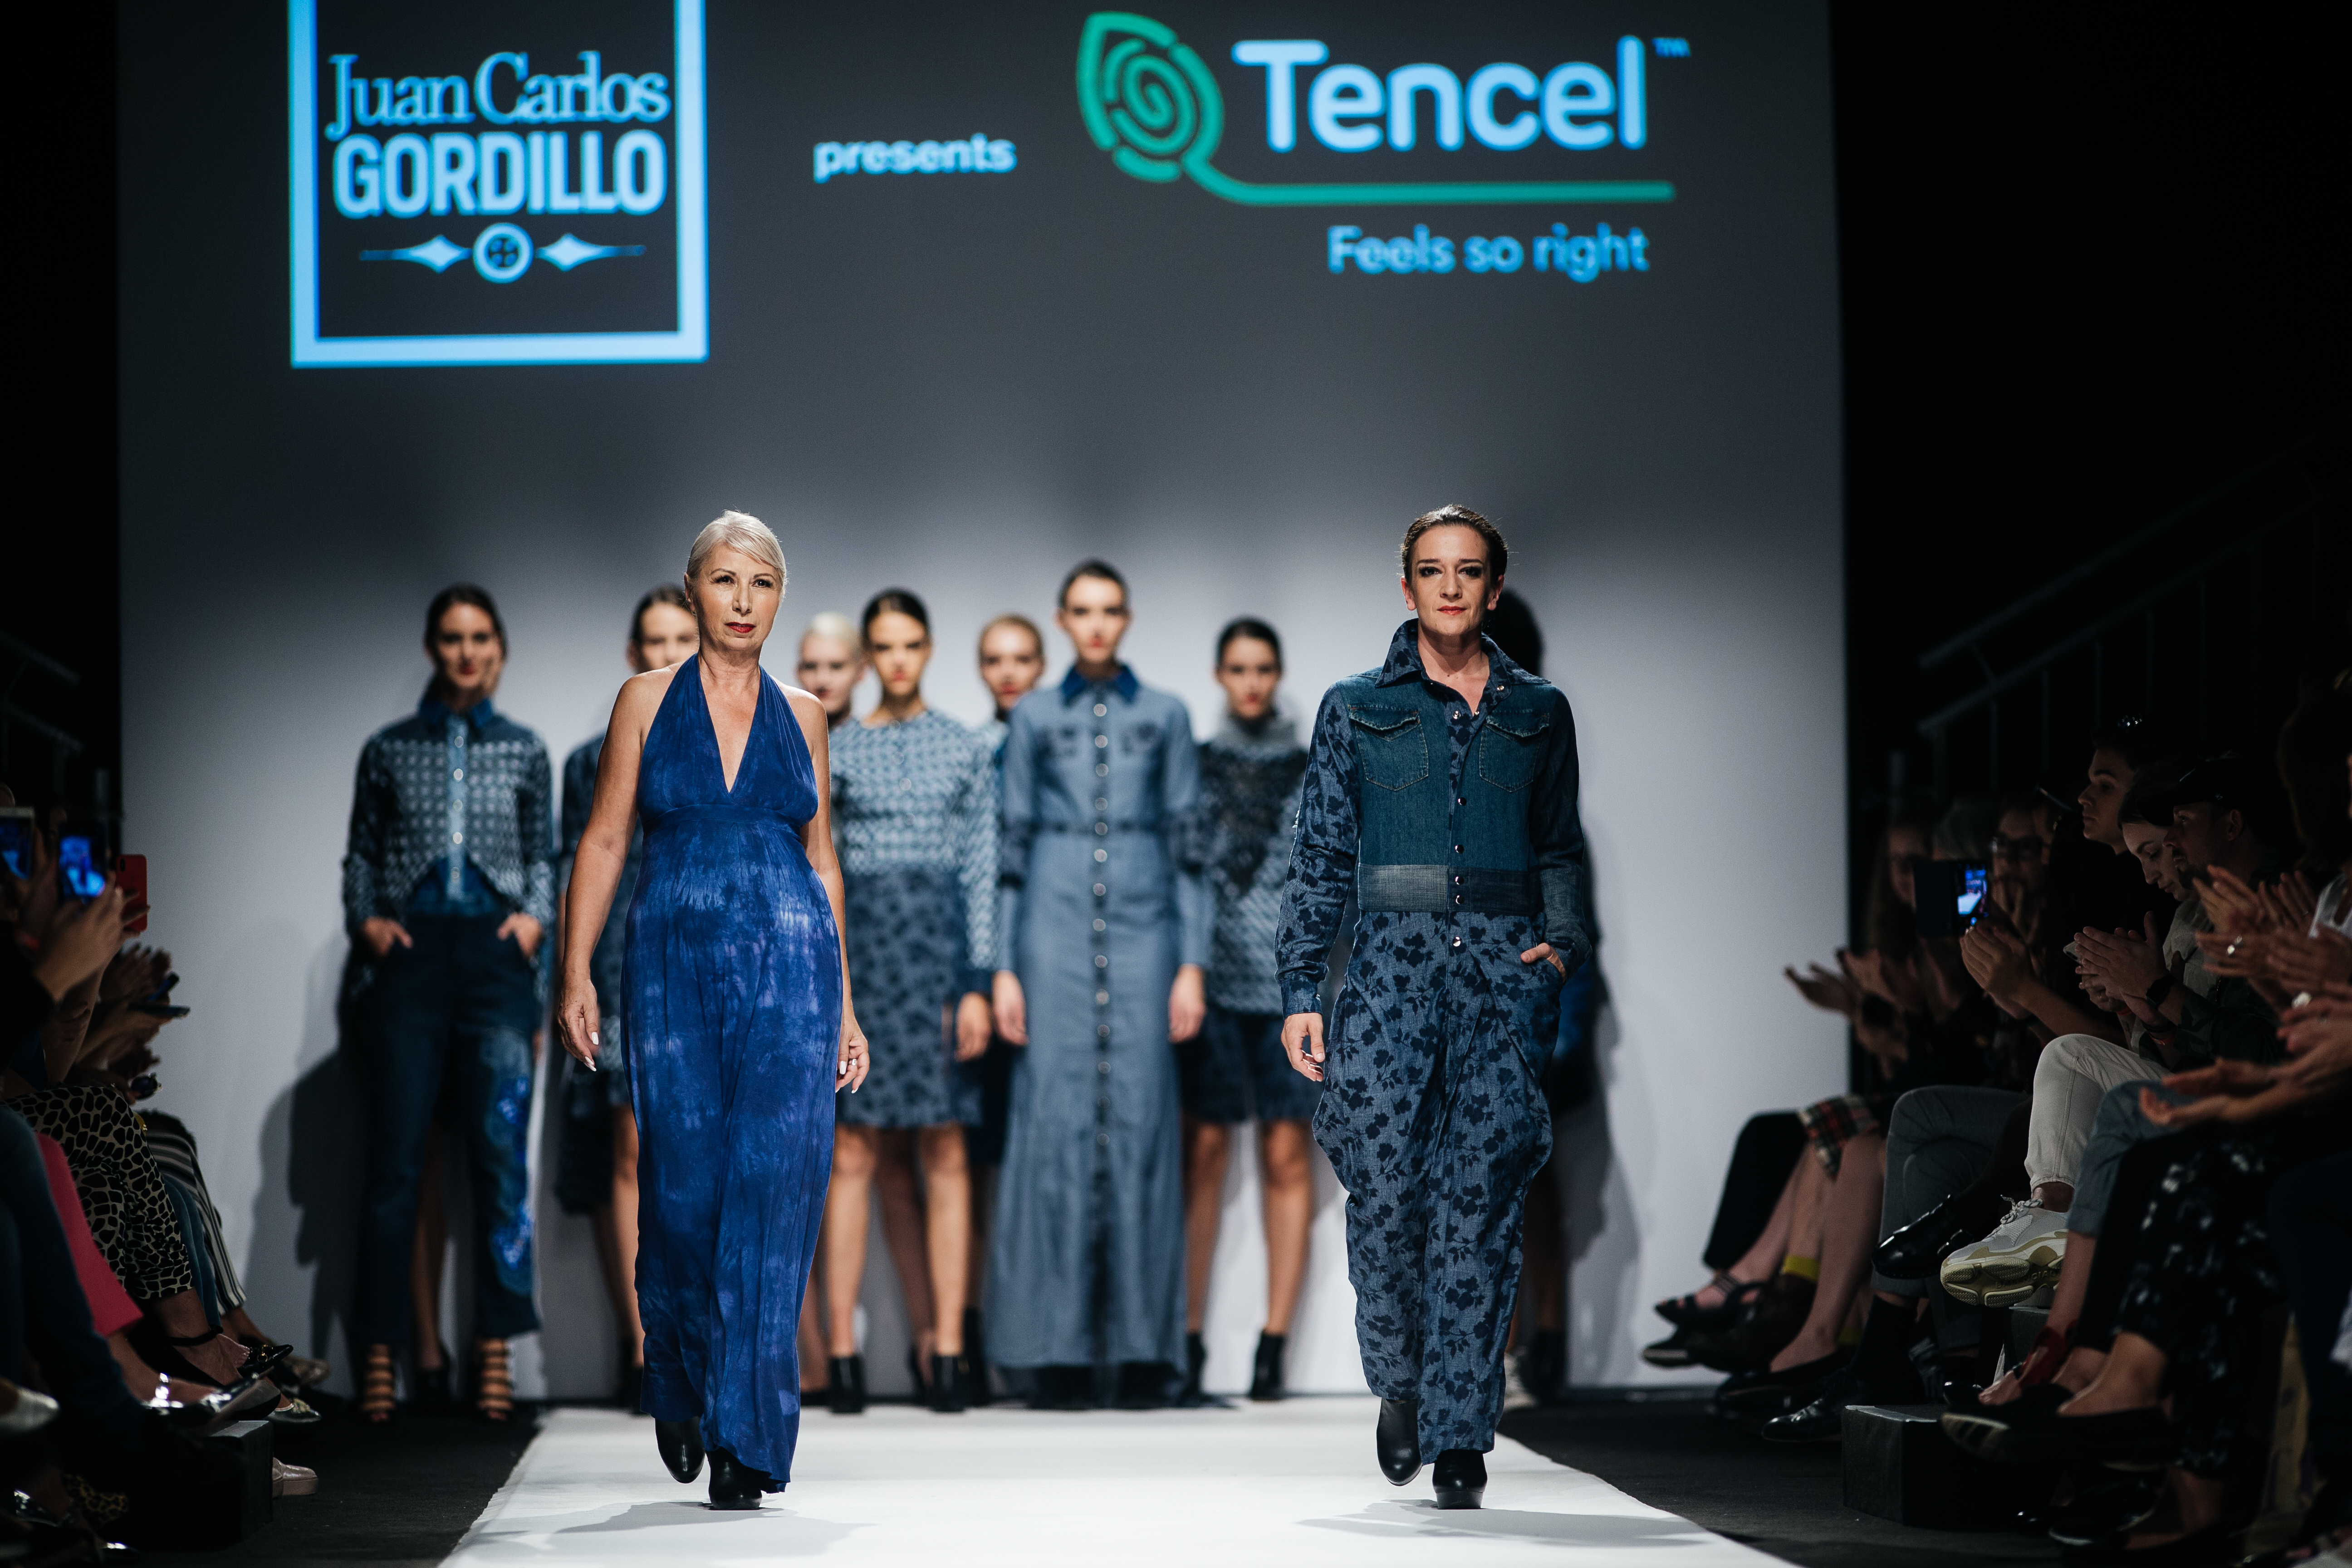 Menabò, communication agency in Forlì, for Juan Carlos Gordillo by TENCEL™ Denim - The end of the fashion show